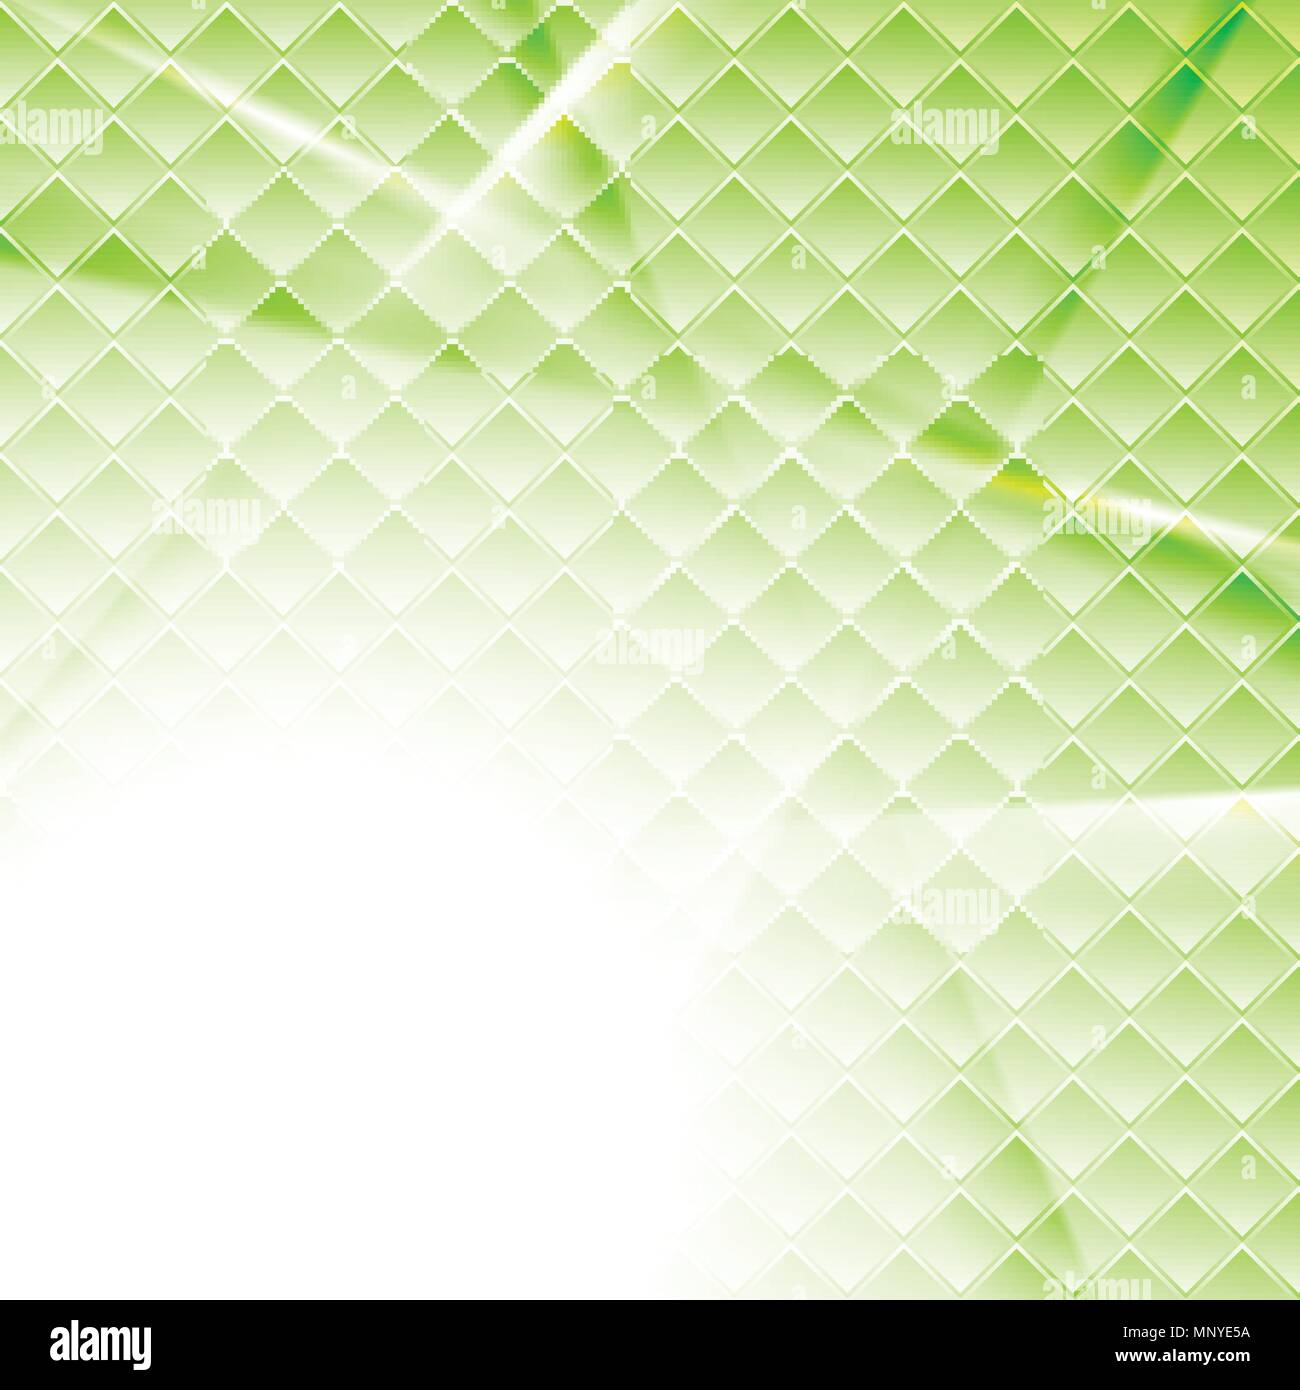 Light Green Tech Minimal Abstract Background With Squares Texture Vector Bright Design Stock Vector Image Art Alamy Looking for the best light green backgrounds? https www alamy com light green tech minimal abstract background with squares texture vector bright design image185615286 html